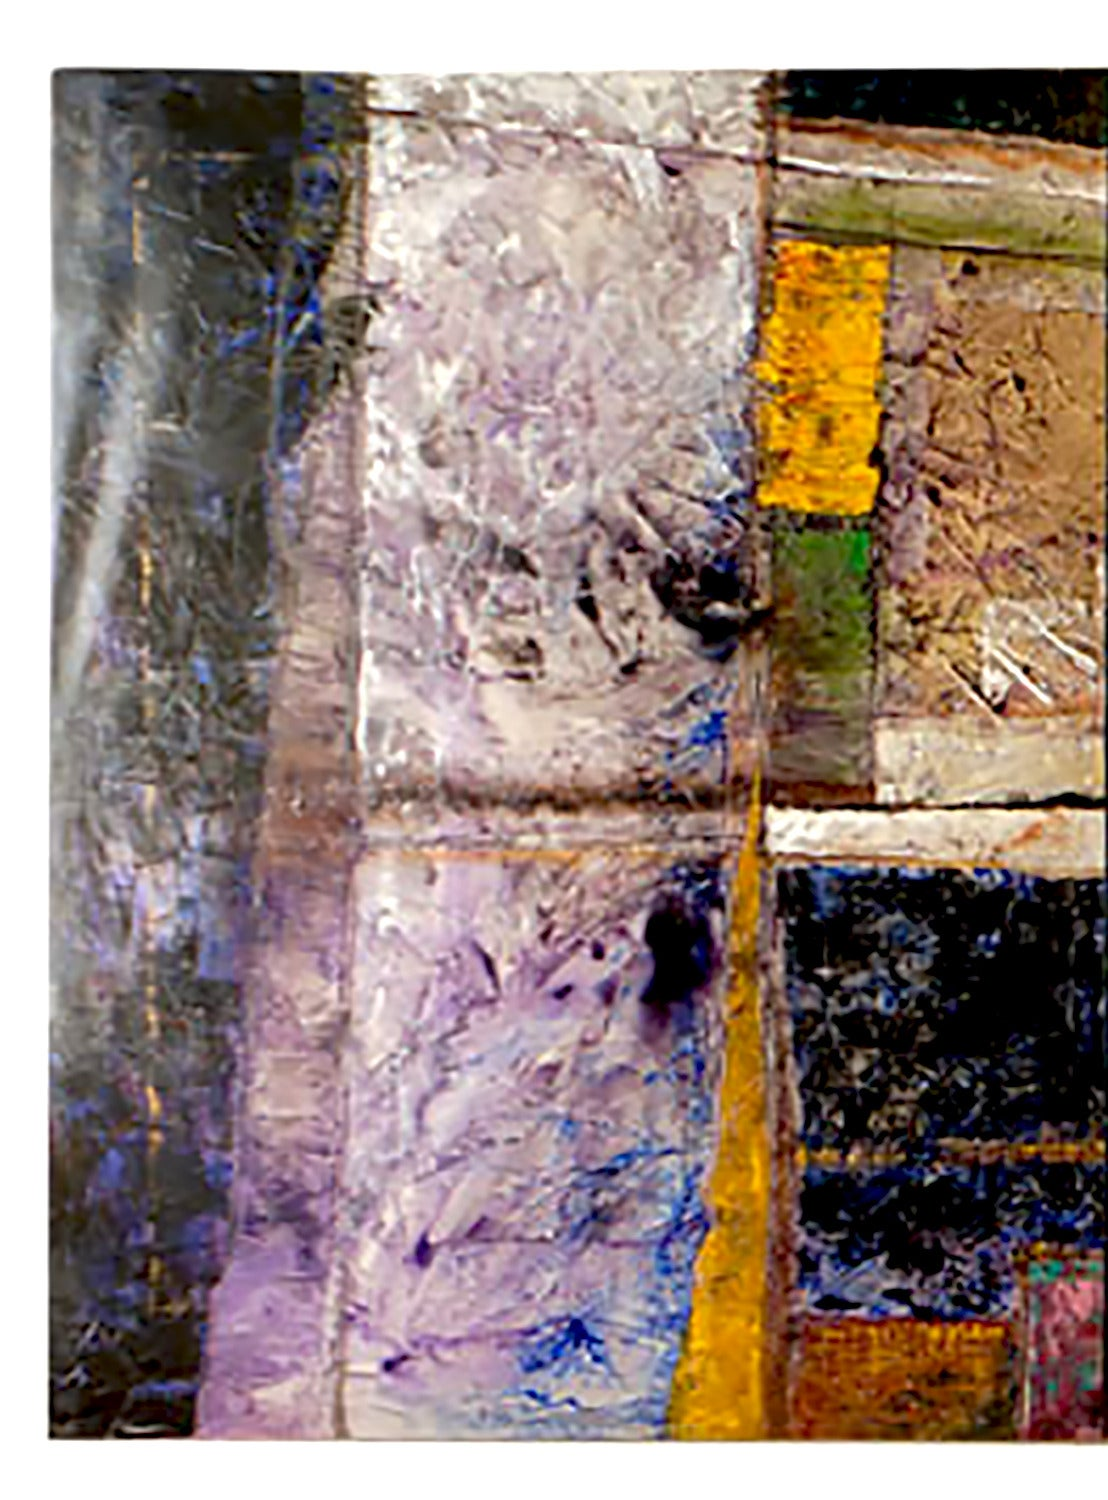 Over 7 feet tall and 20 feet wide, this colorful acrylic on canvas abstract expressionist painting is by Mexican-born Juan Carlos Macias, who resides in Chicago. Photographs do not do justice to this early work by Macias. Each 88